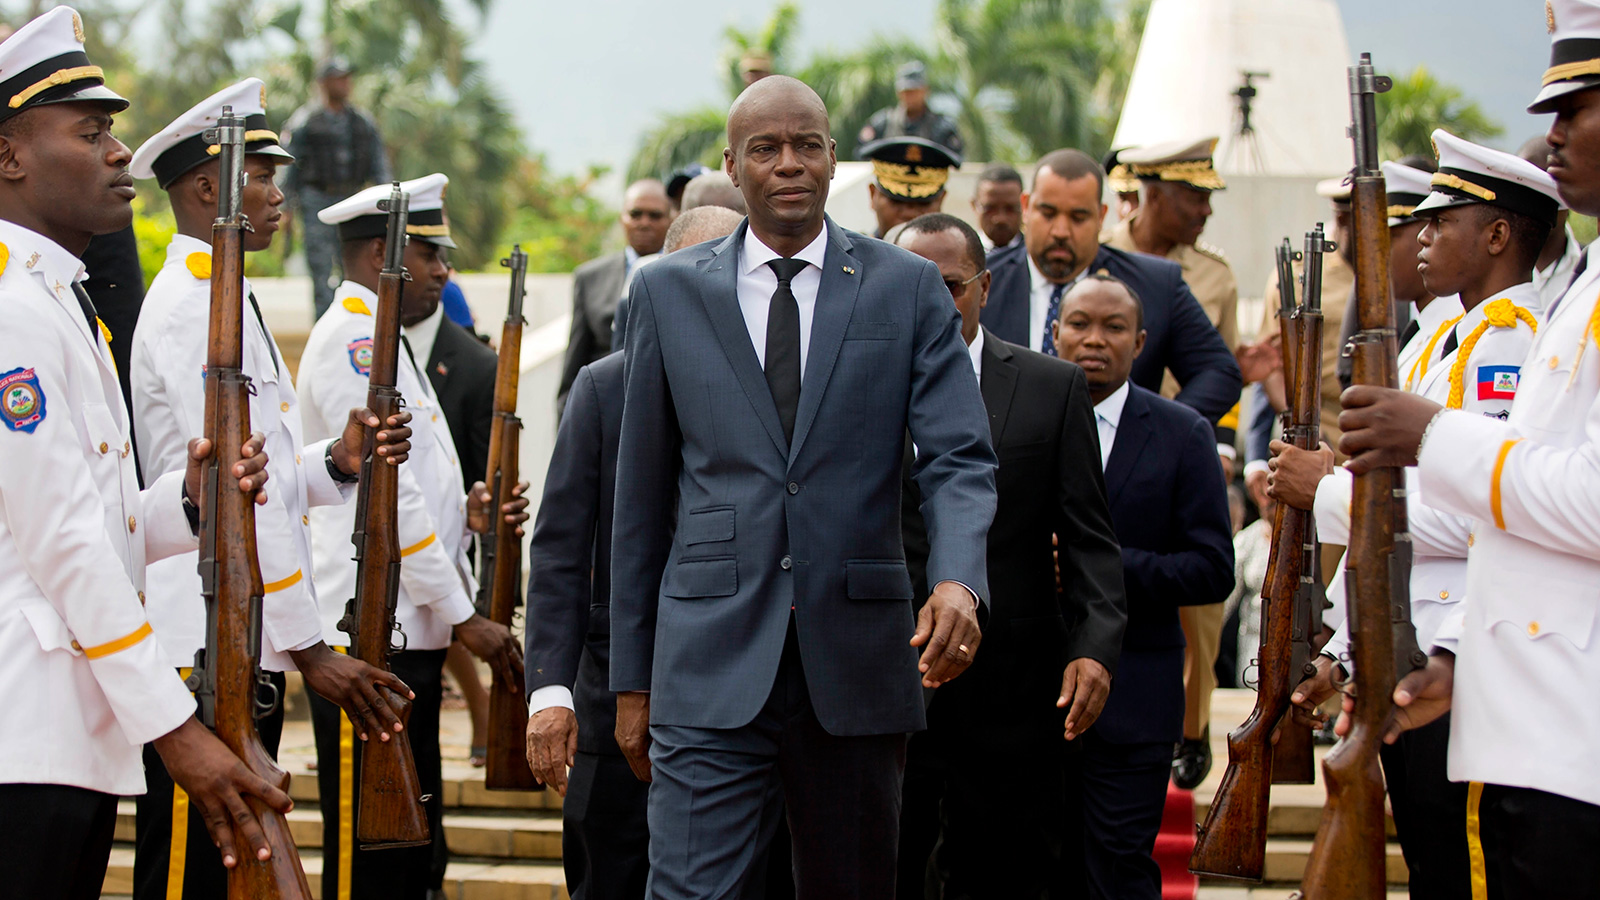 In this April 7, 2018, file photo, Haiti's President Jovenel Moise leaves after a ceremony marking the 215th anniversary of revolutionary hero Toussaint Louverture's death, at the National Pantheon museum in Port-au-Prince, Haiti.